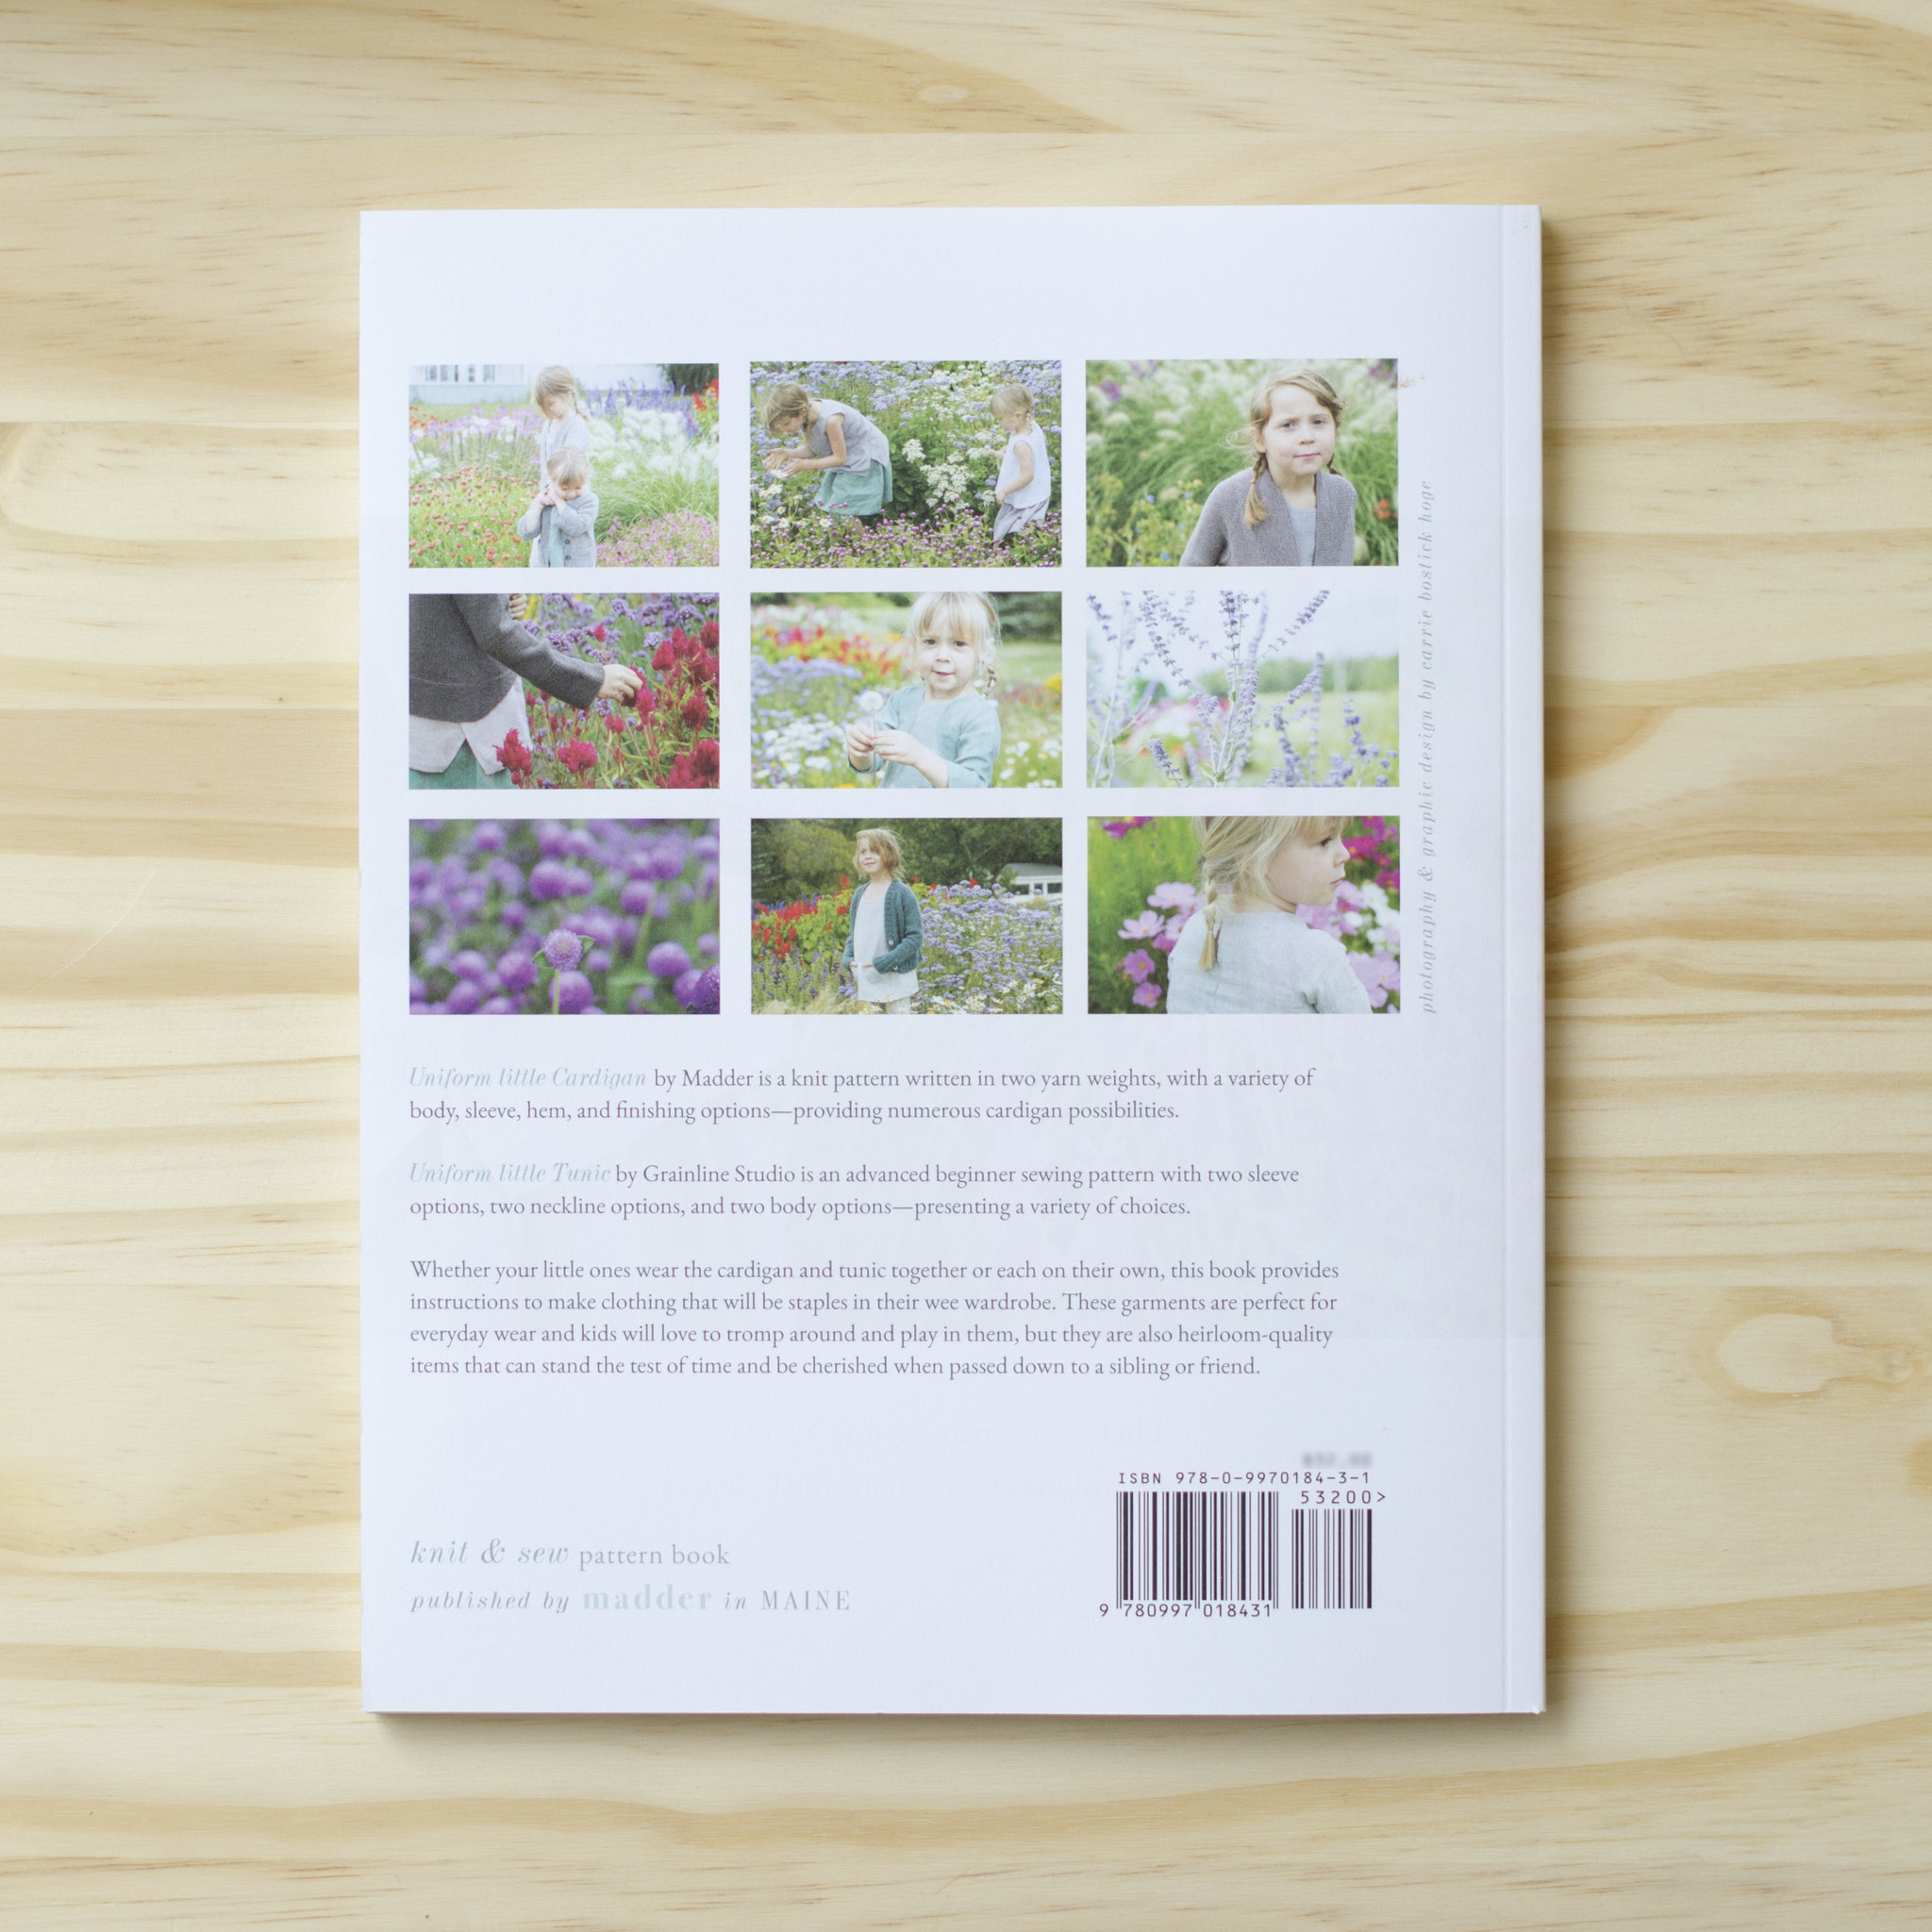 Uniform Little : Knit and Sew Book